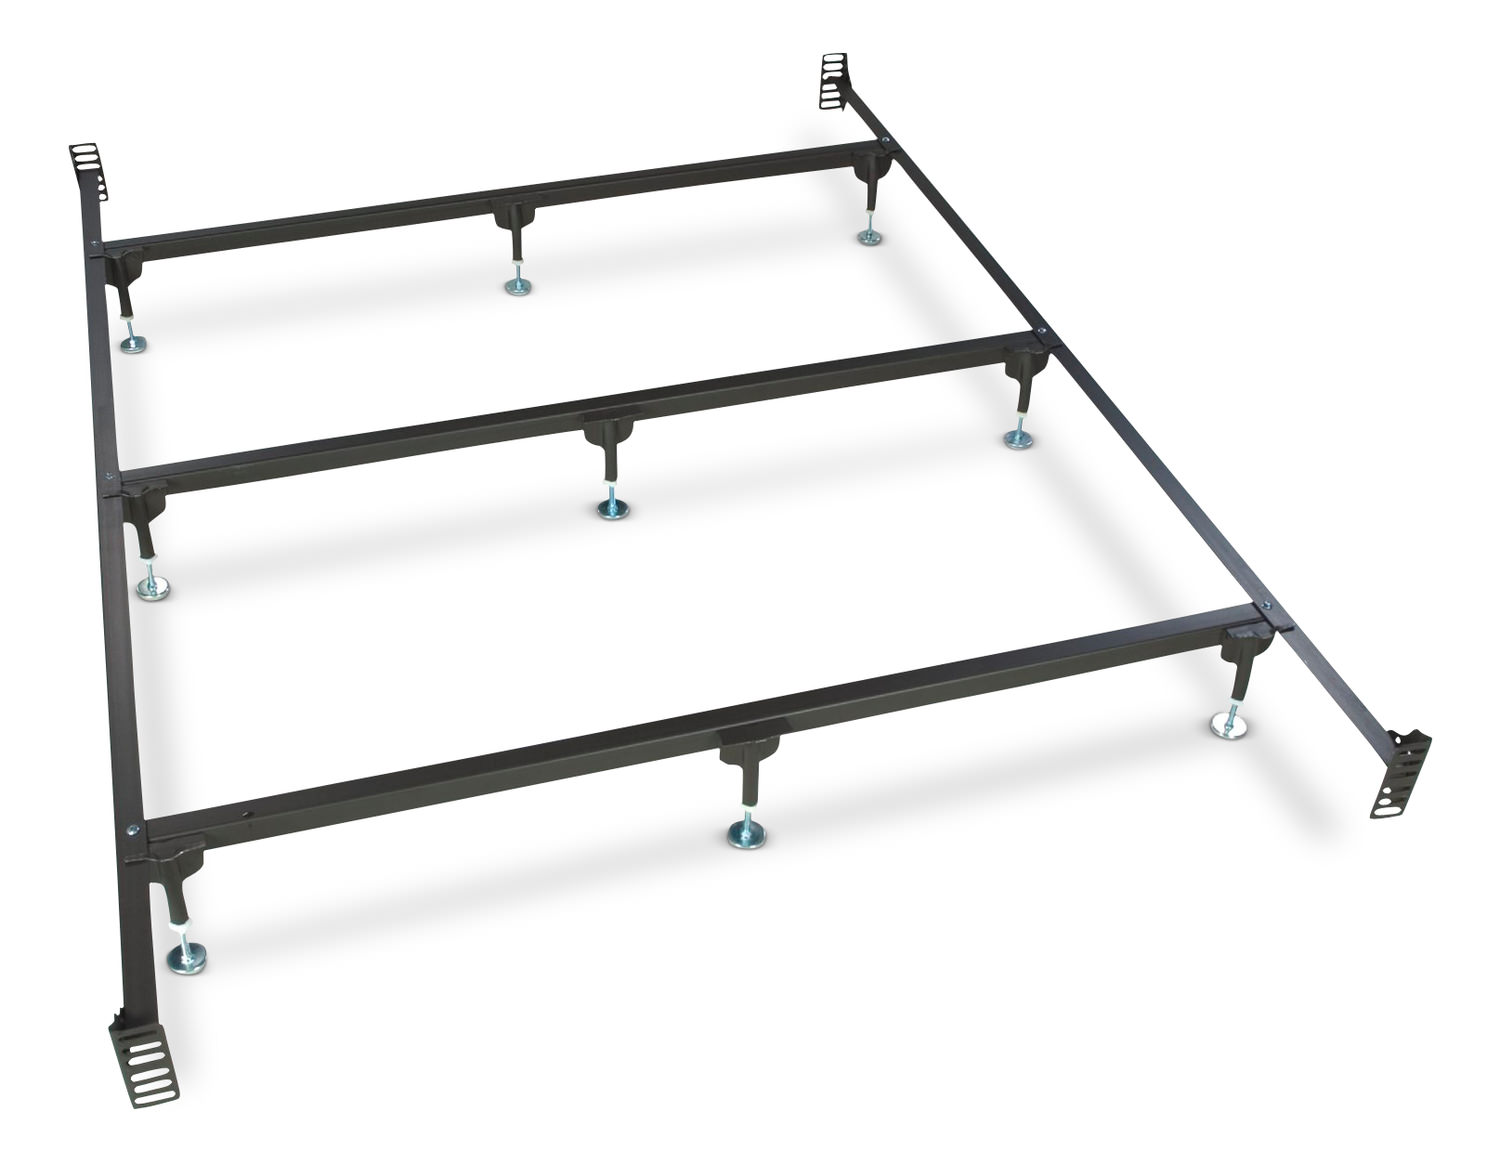 Metal Headboard/ Footboard Bed Frame - Queen Size by Glideaway ...